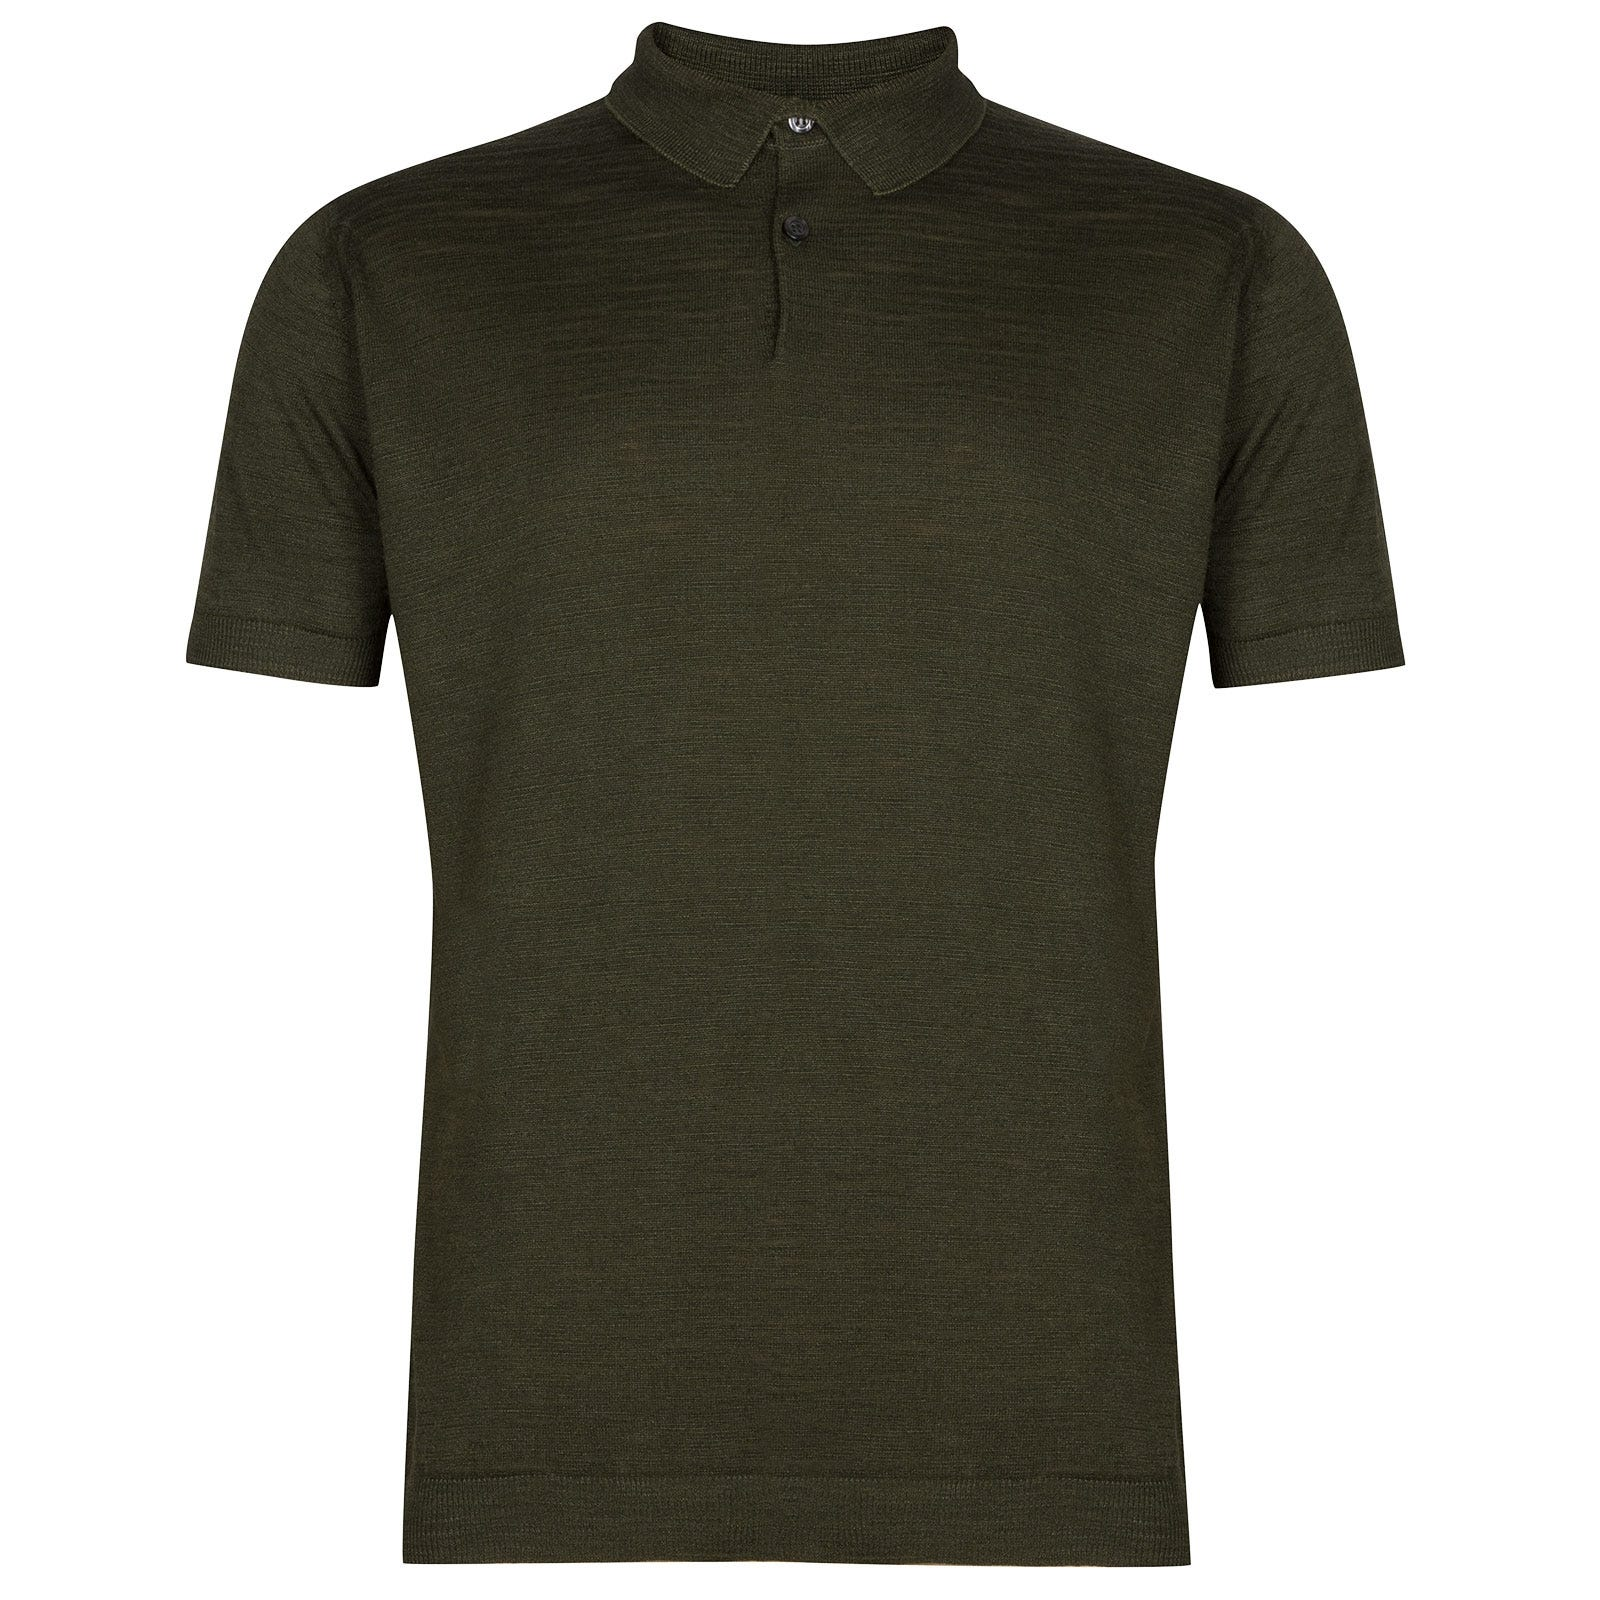 John Smedley Pirro in Sepal Green Shirt-XLG